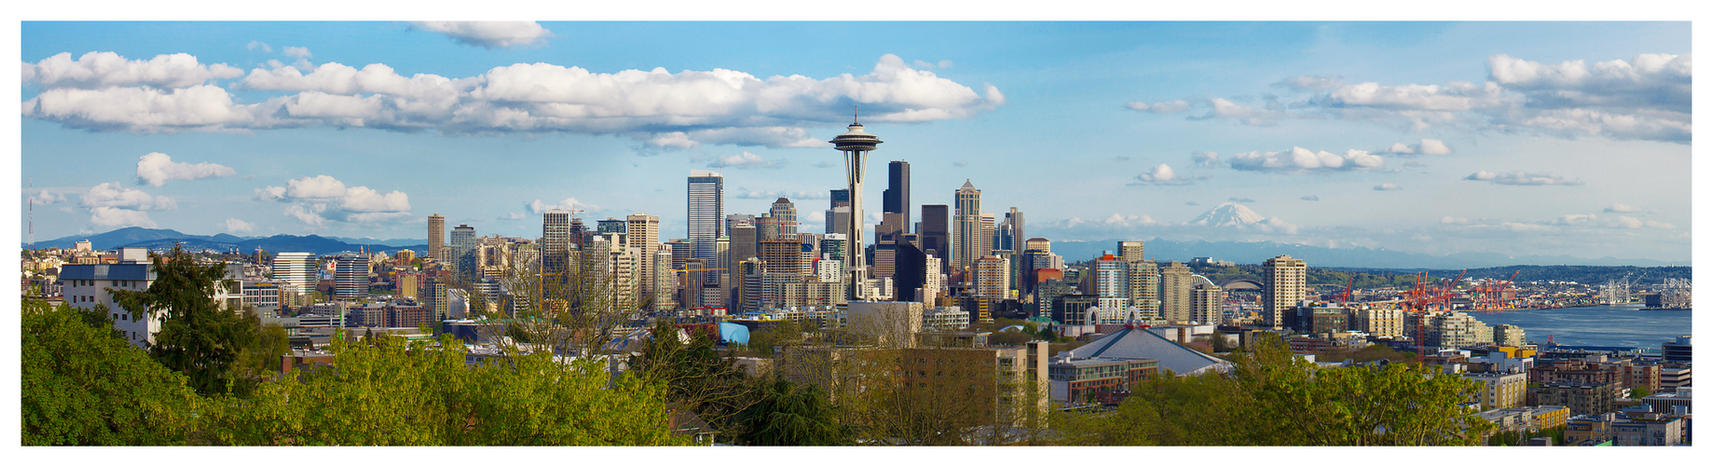 seattle panoramic 1 by photoboy1002001 on deviantart seattle panorama by banjoeskimo on deviantart 669